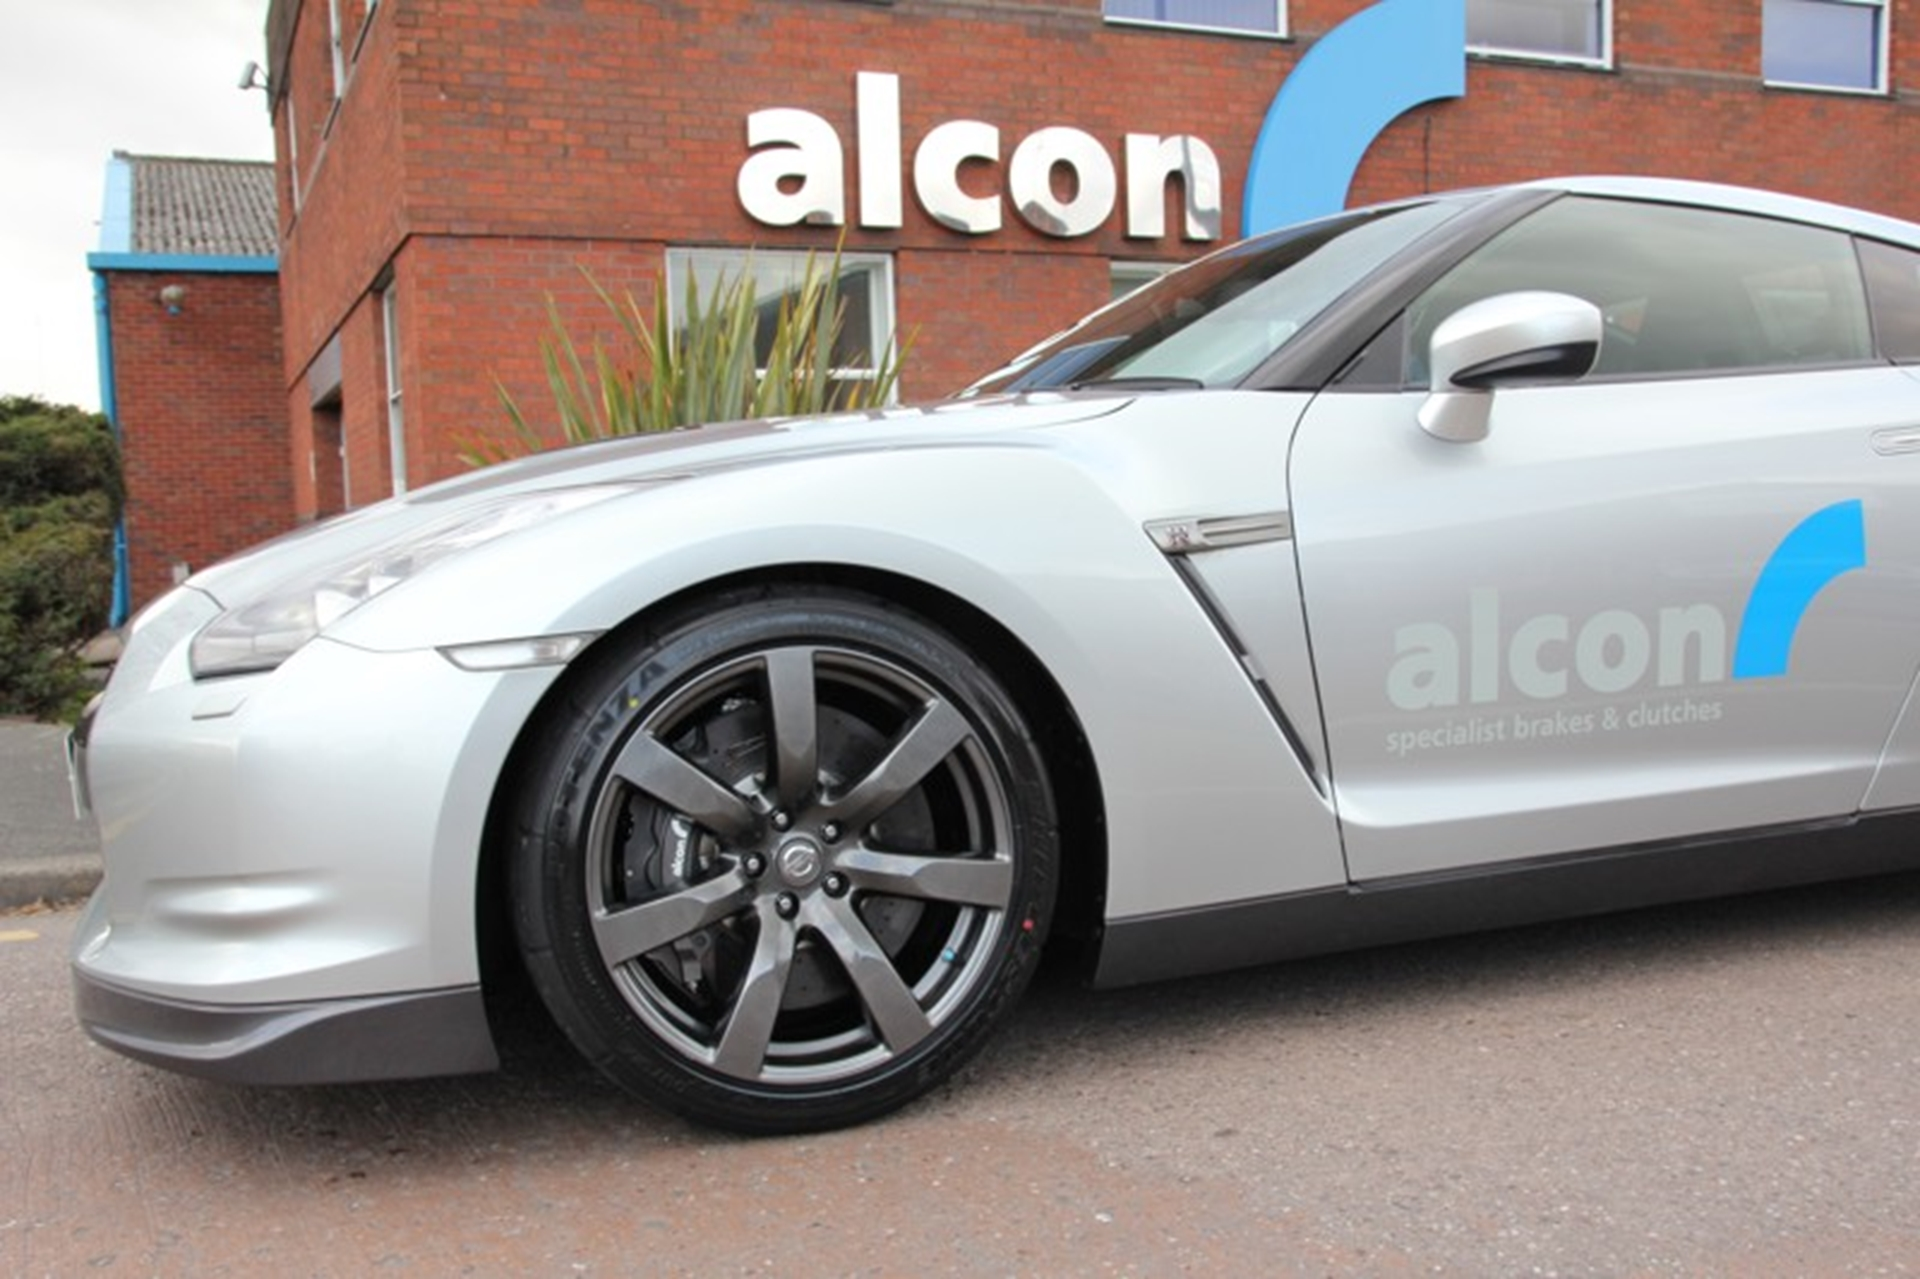 Alcon's CCX SuperKit for the Nissan R35 GT-R is available now